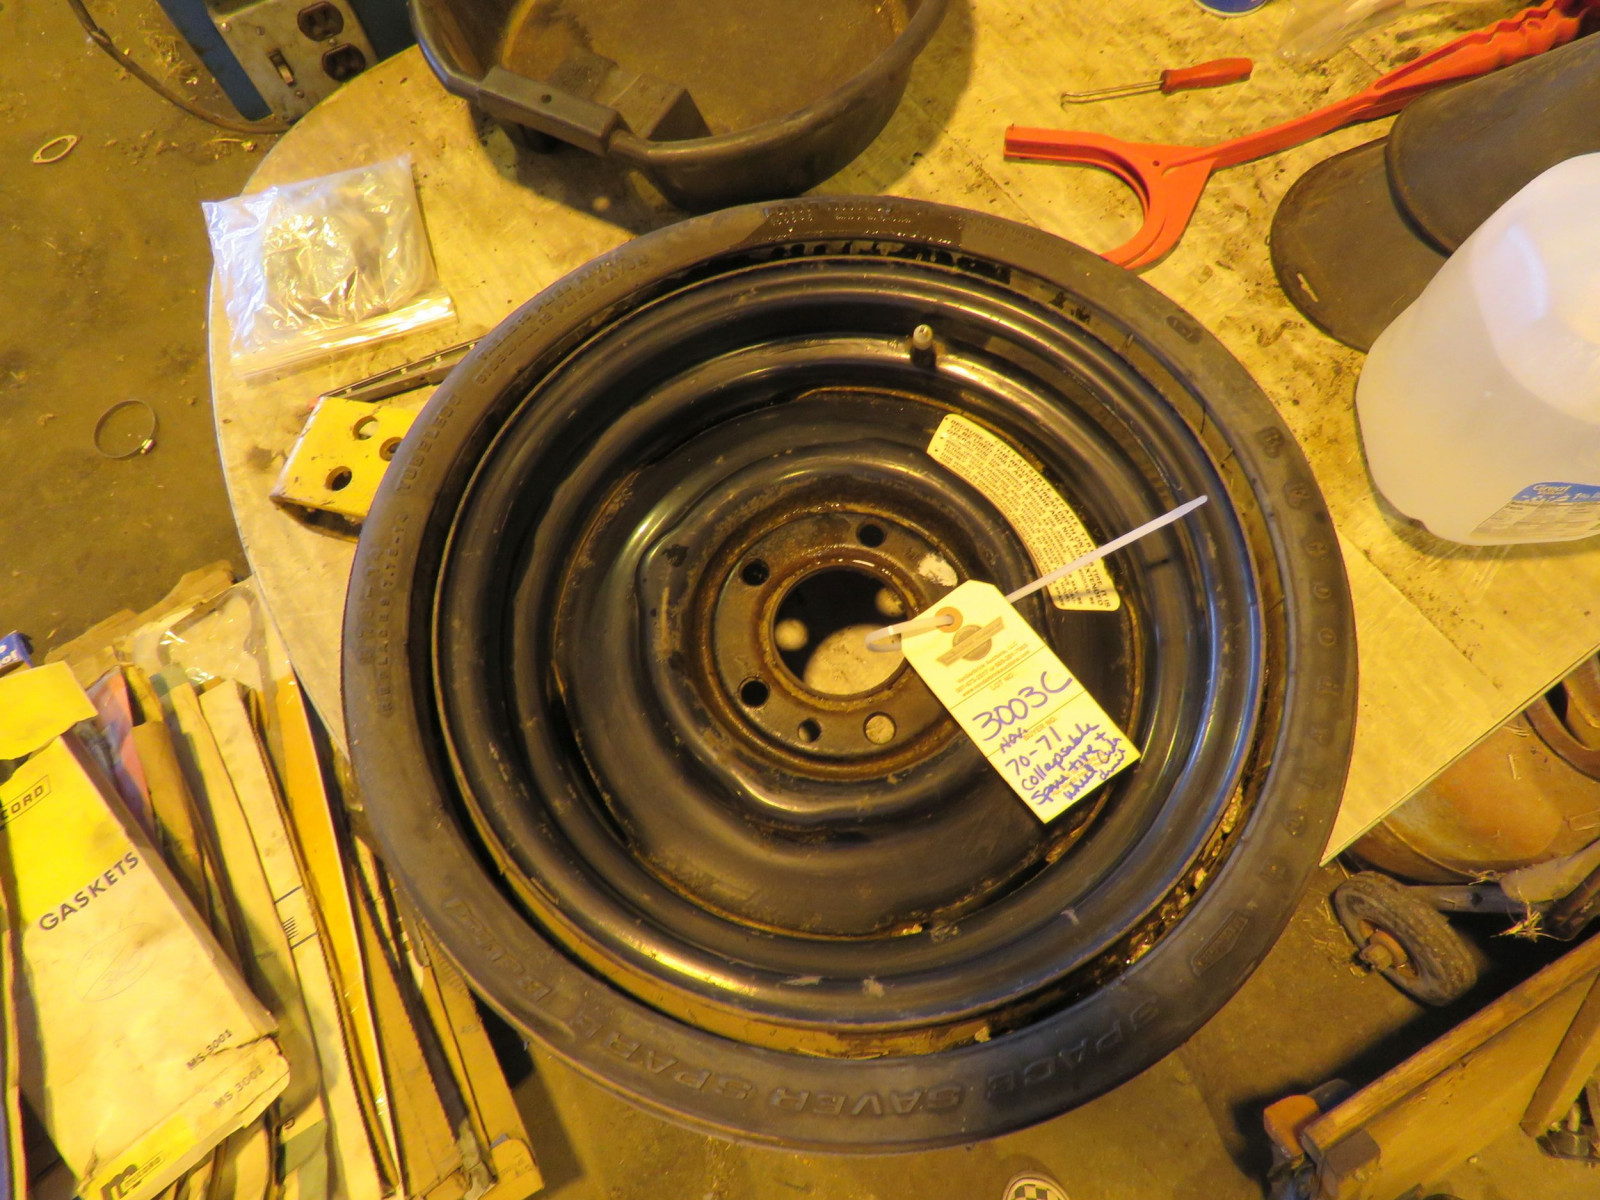 RARE BF Goodrich Collapsible Spare Tire for 426 HEMI CUDA, Challenger - Image 3